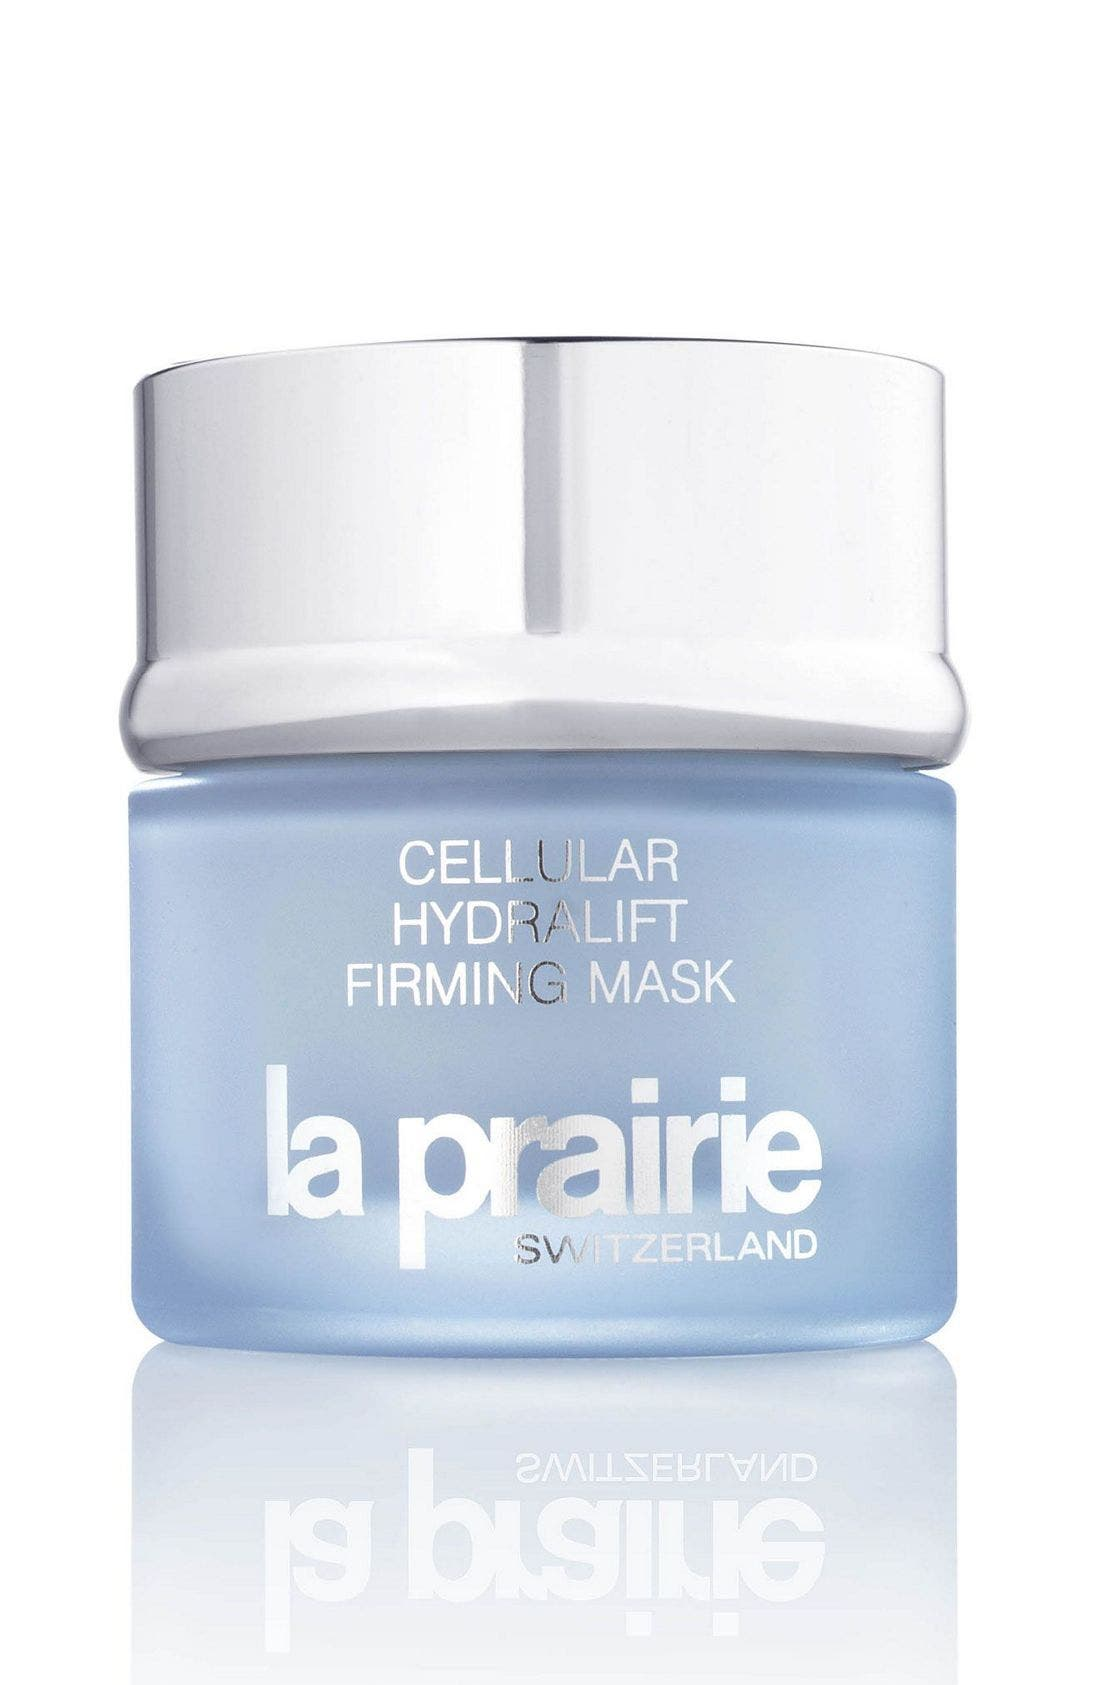 Cellular Hydralift Firming Mask | Nordstrom